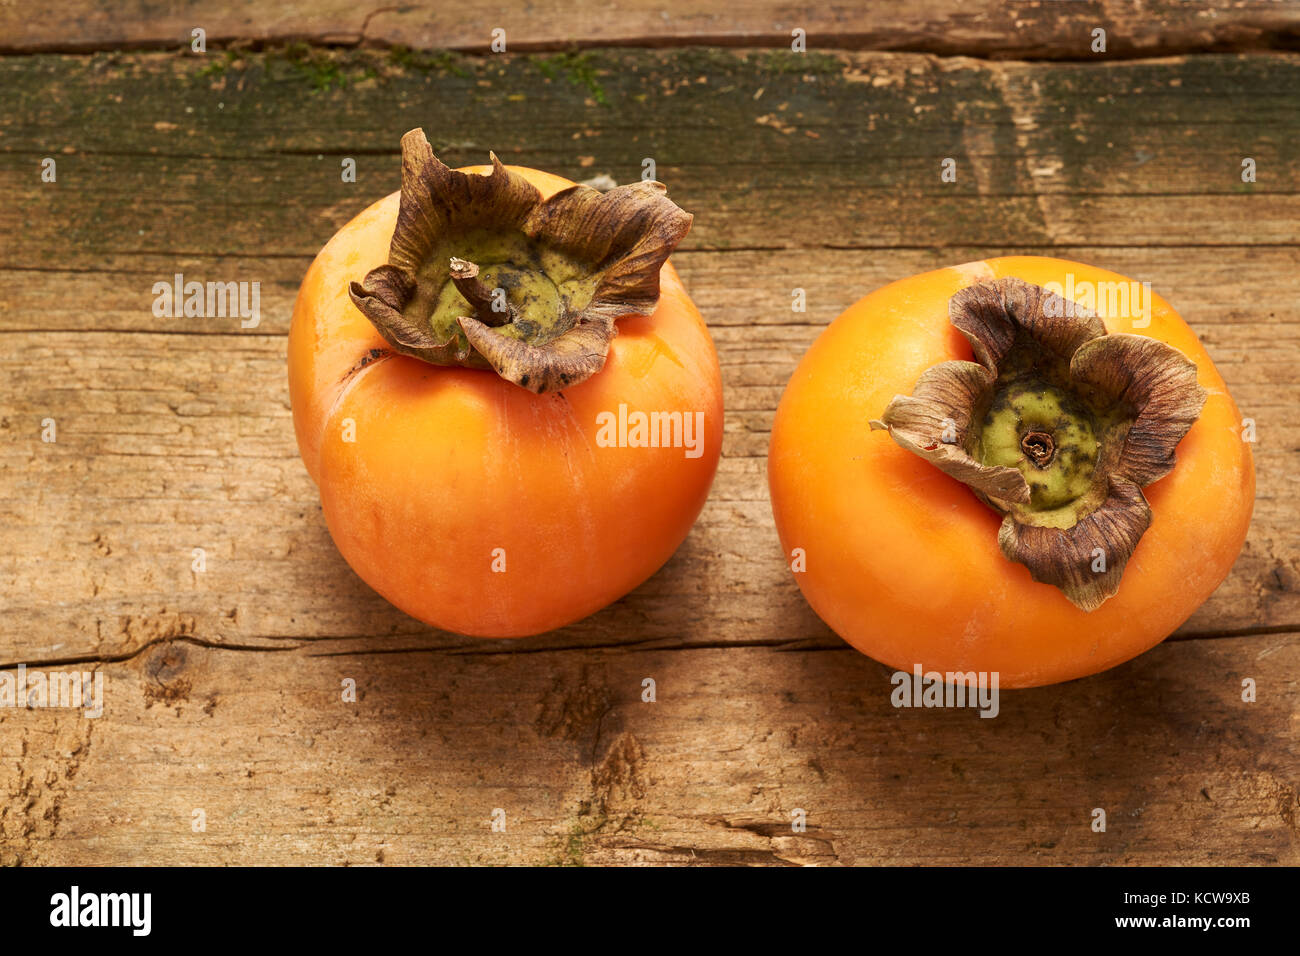 two delicious orange persimmon on an old wooden table - Stock Image